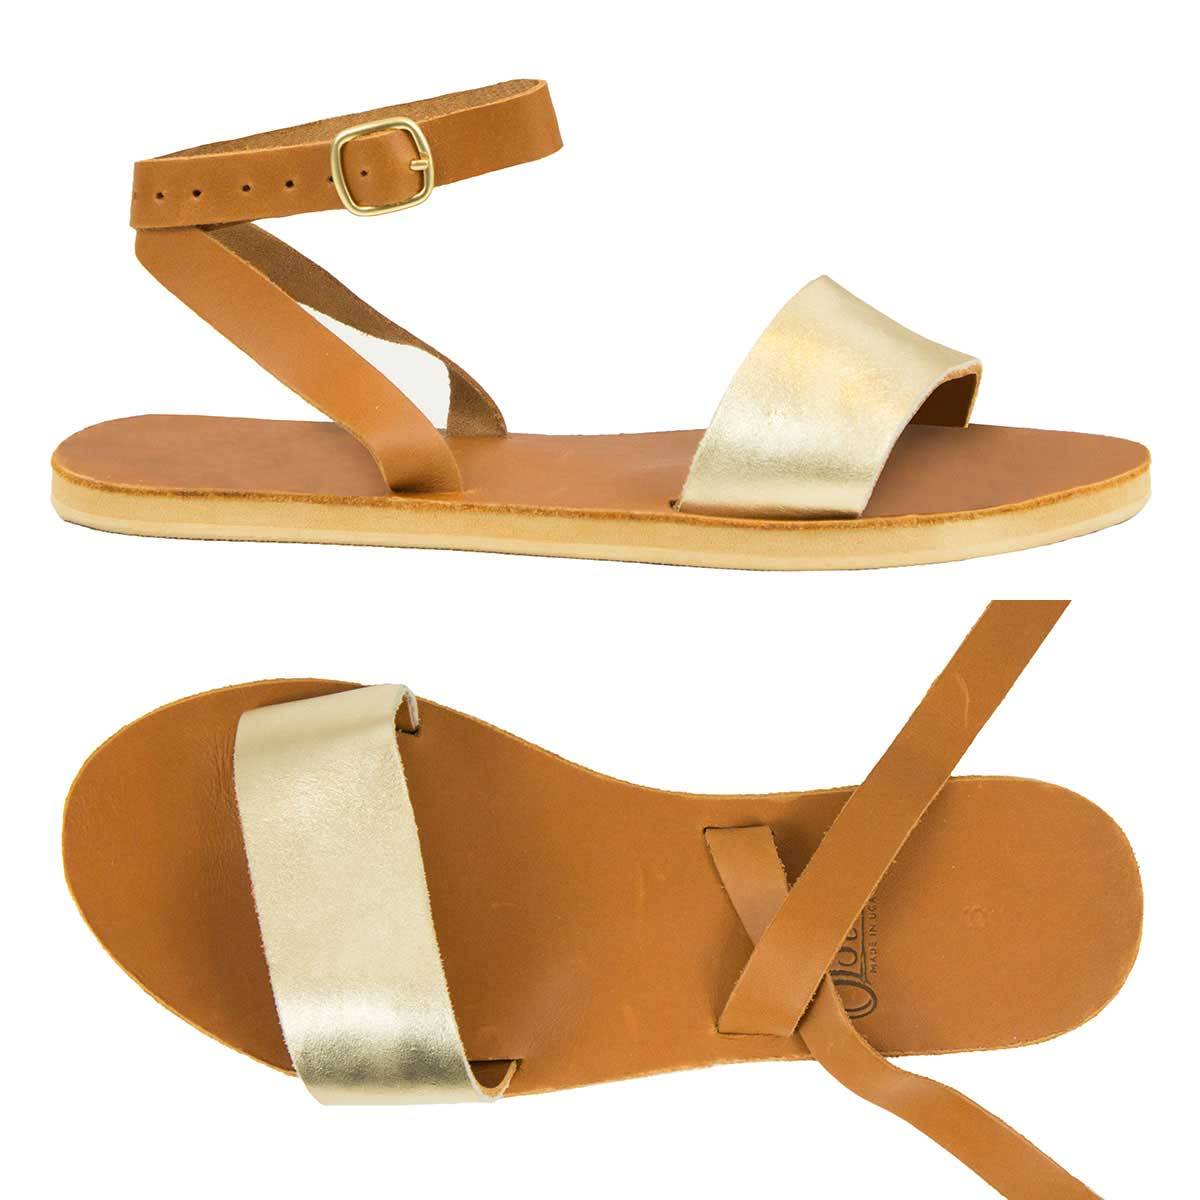 Rue Sandal in Gold and Caramel